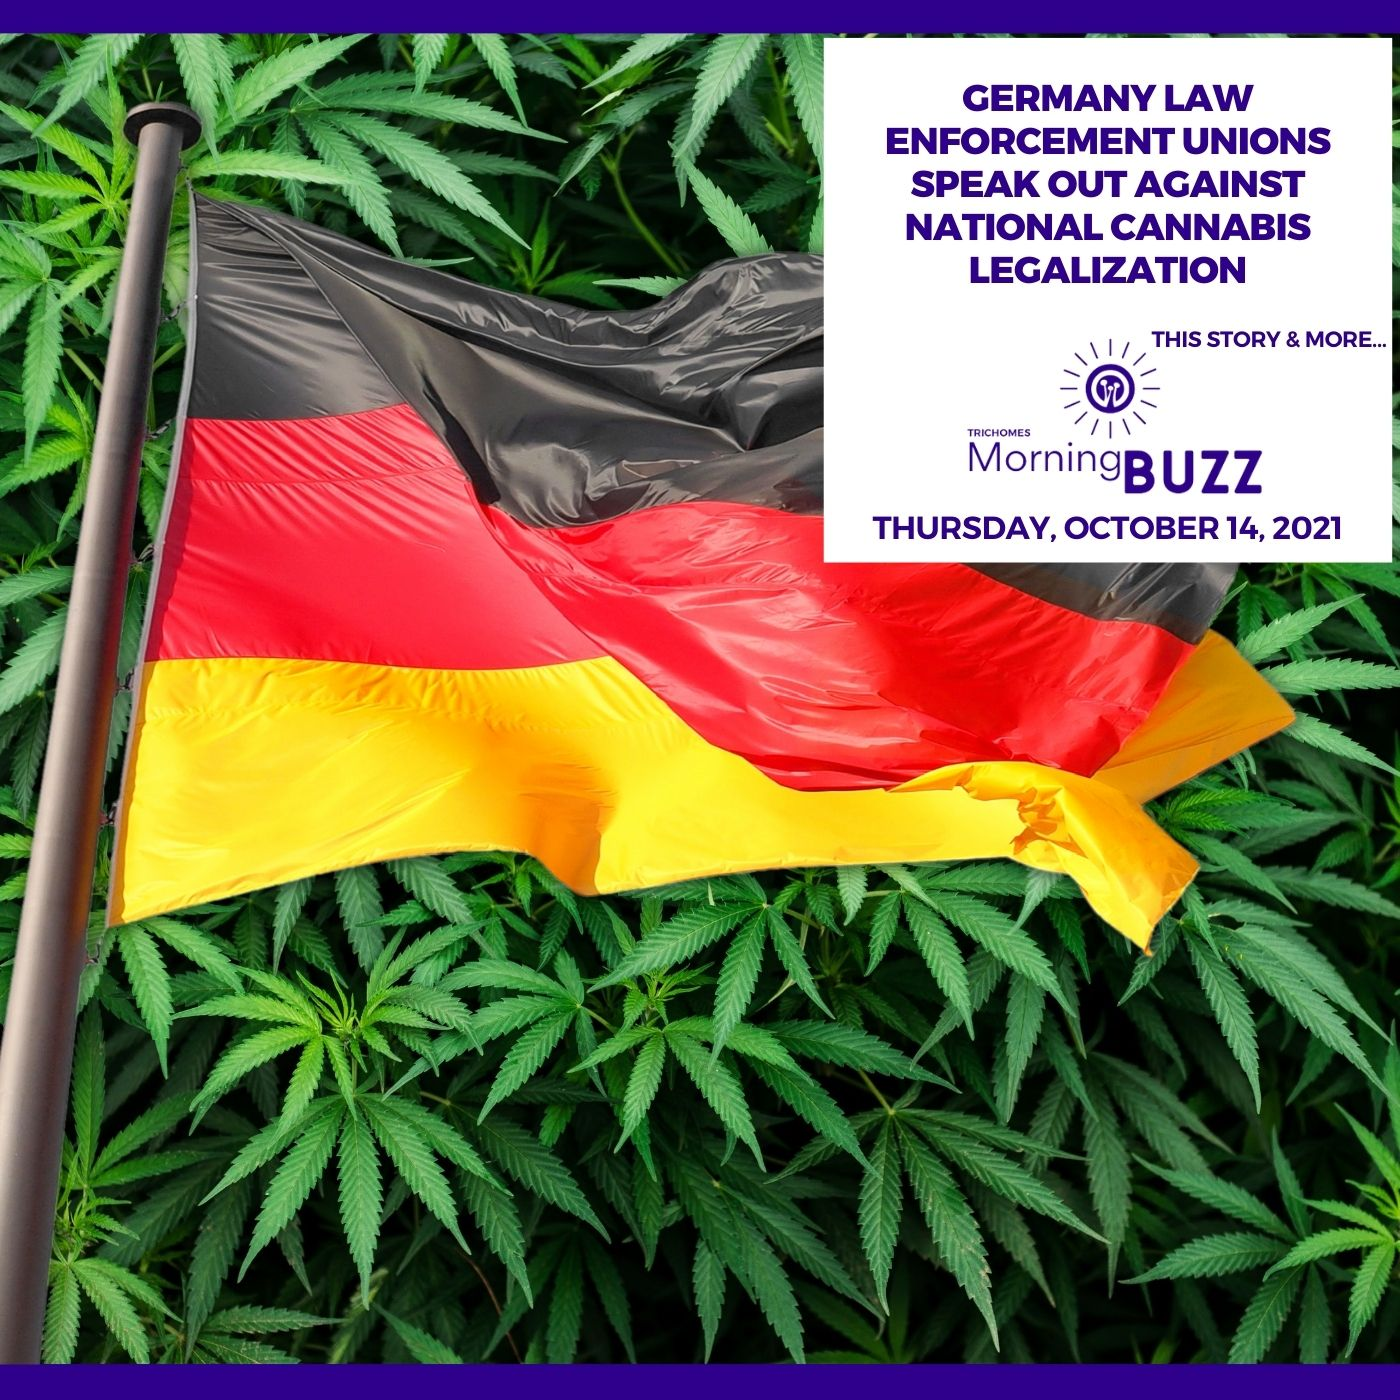 Law Enforcement Unions In Germany Speak Out Against National Cannabis Legalization show art